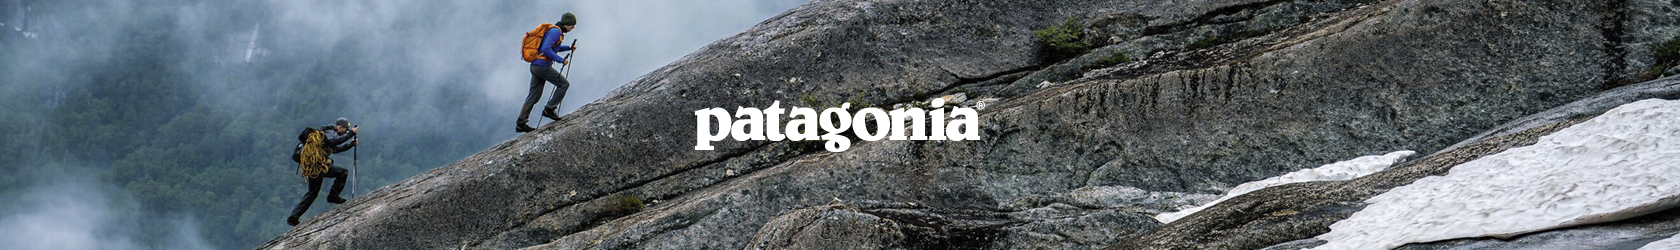 Two people are walking up a rocky mountain, wearing Patagonia gear with walking poles.